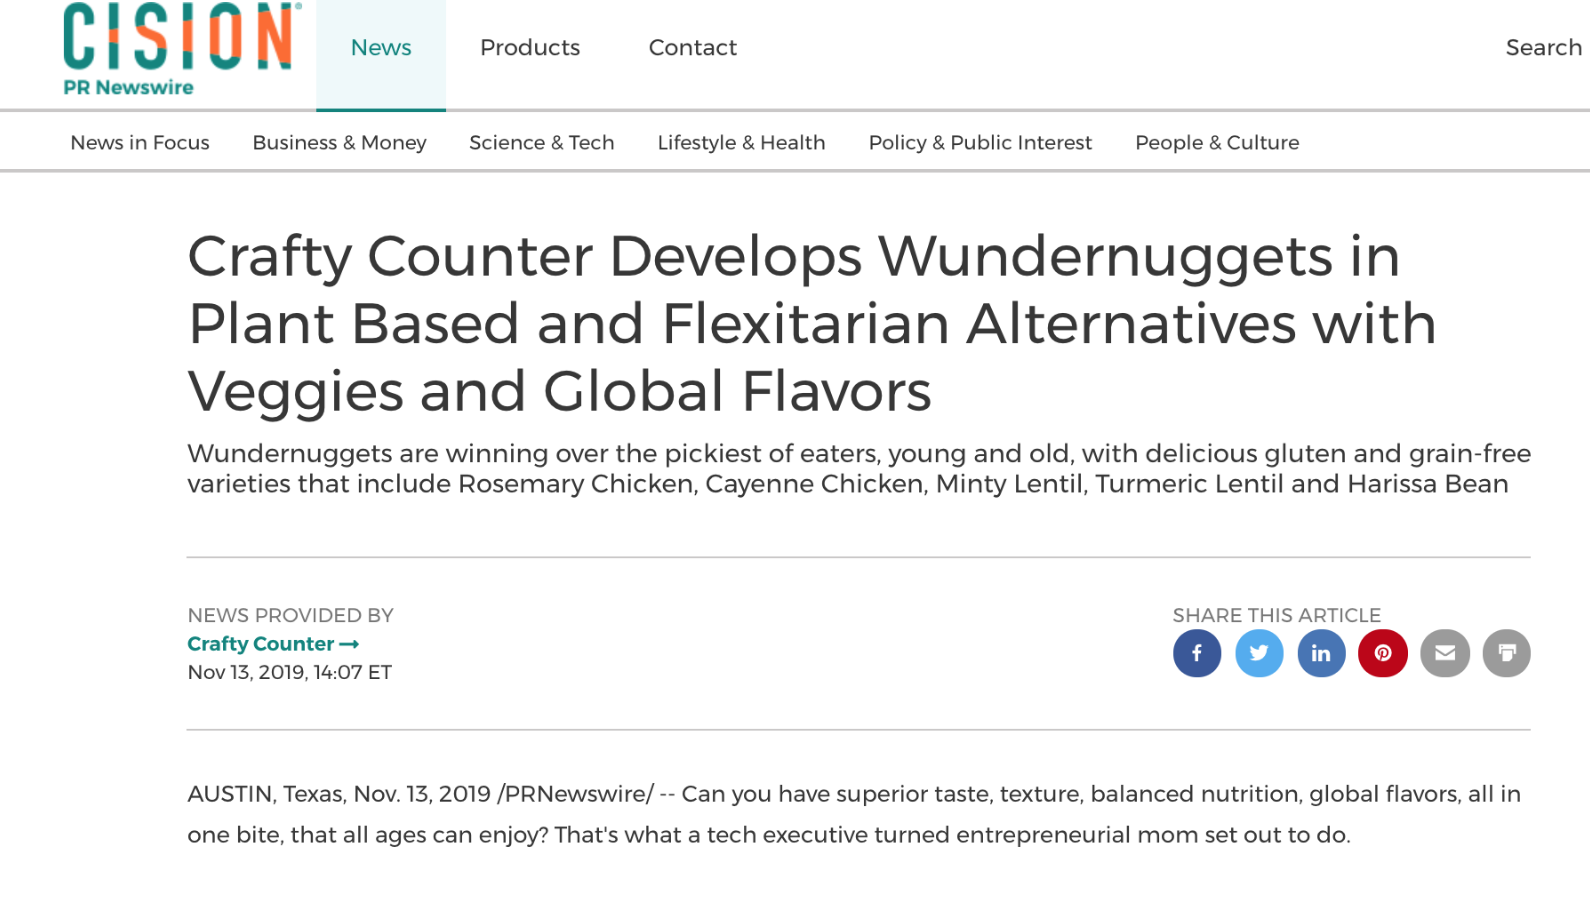 PR Newswire Release about Wundernuggets